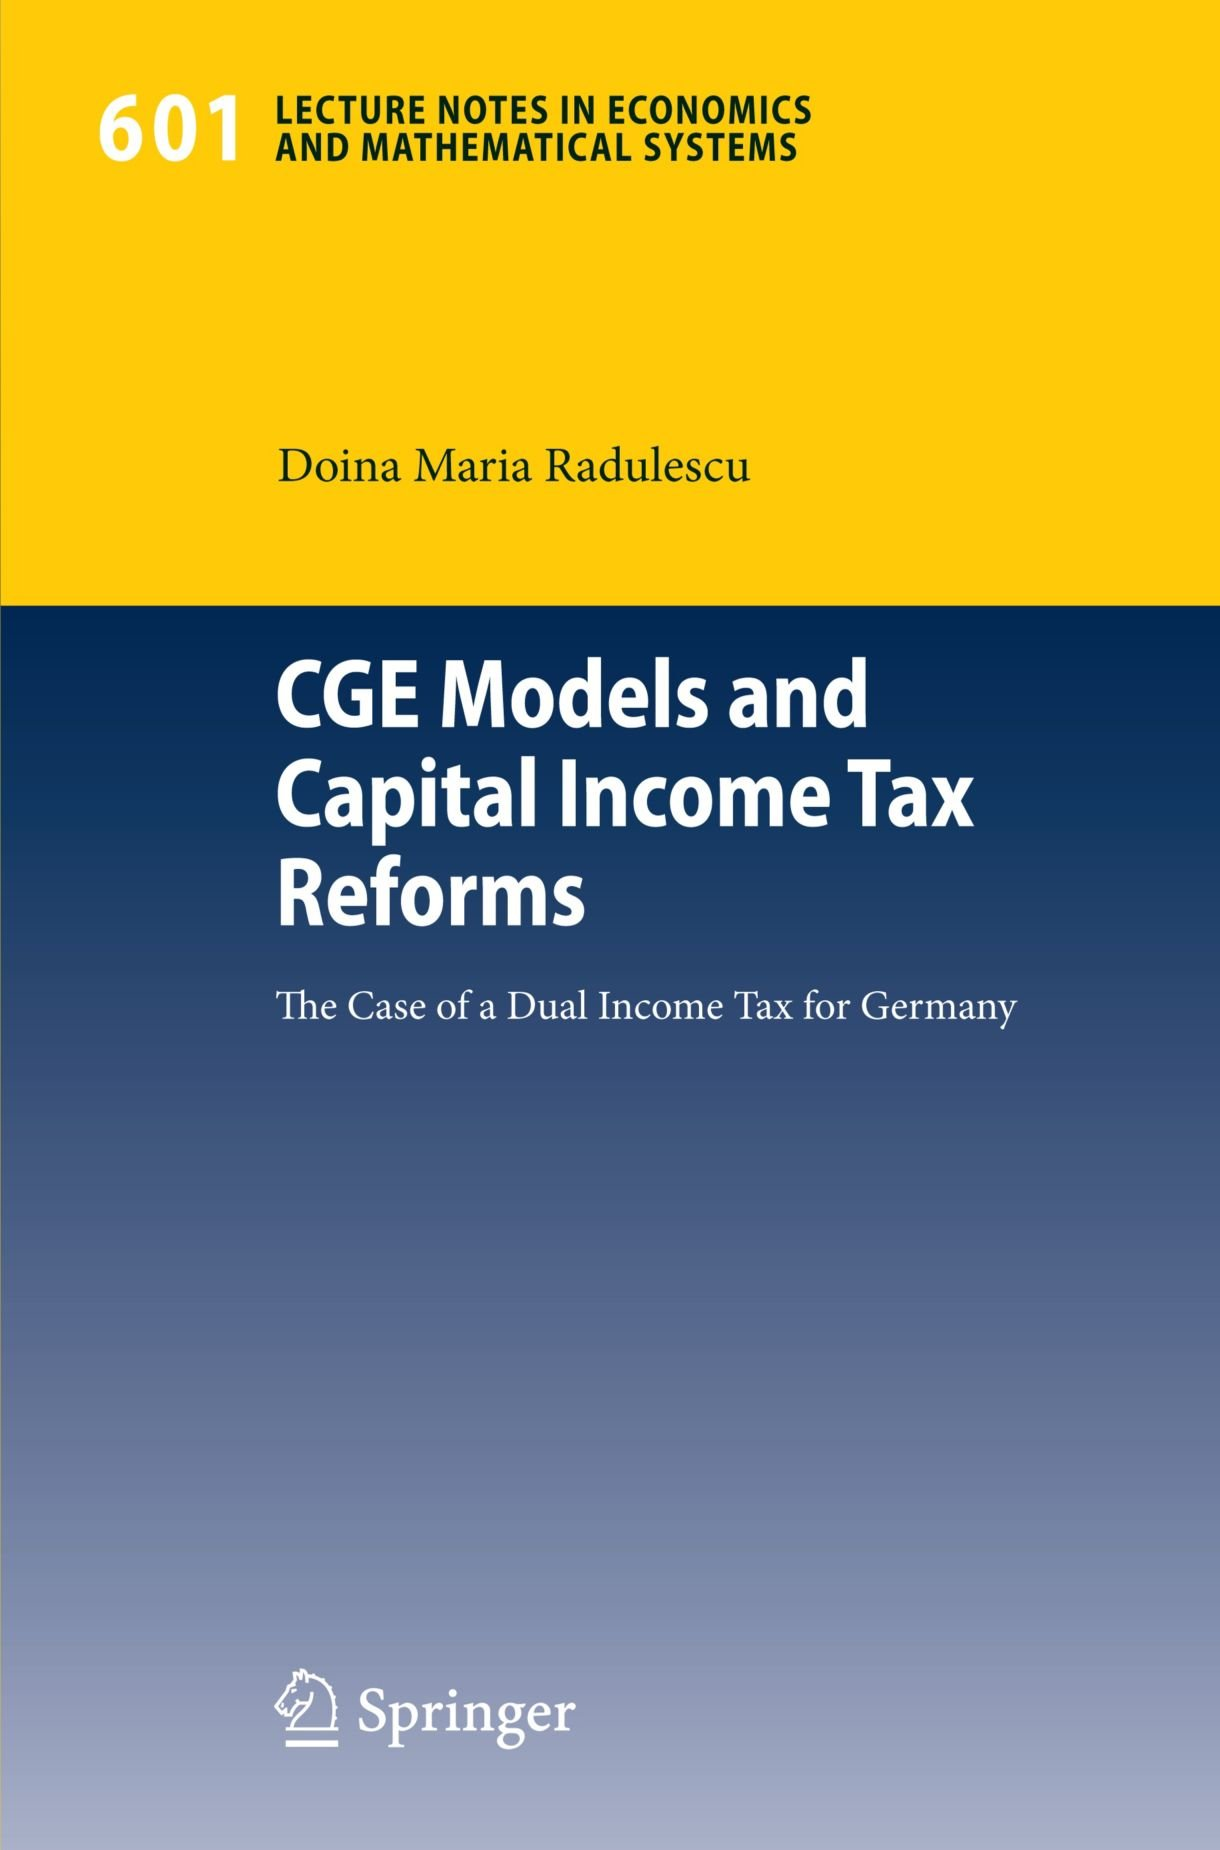 CGE Models and Capital Income Tax Reforms: The Case of a Dual Income Tax for Germany (Lecture Notes in Economics and Mathematical Systems)